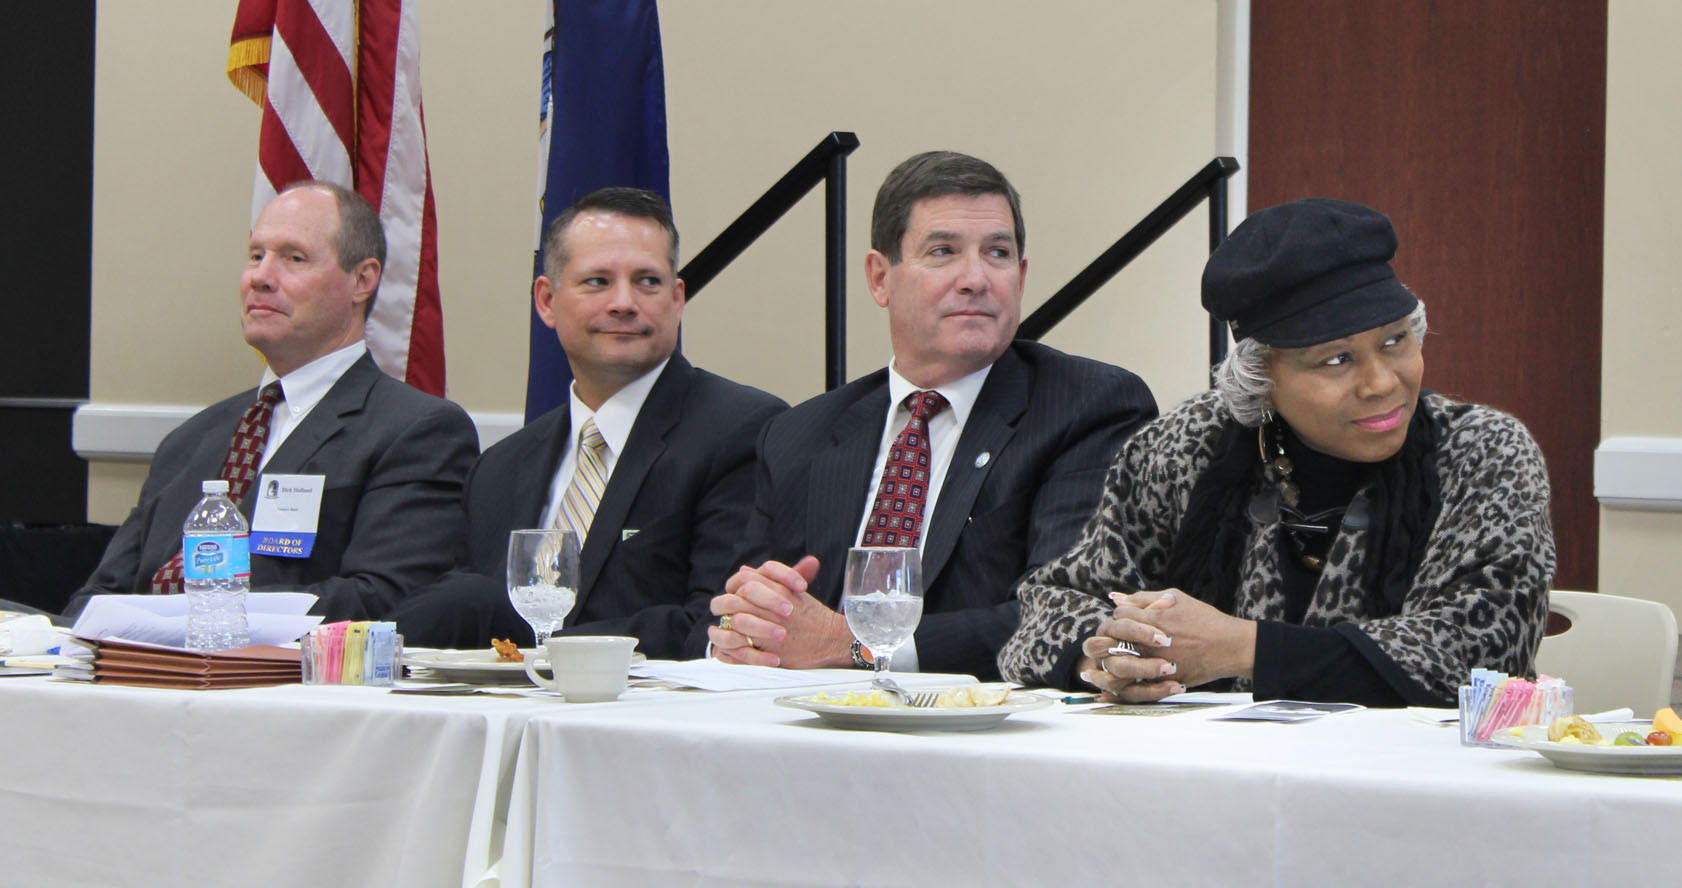 Pictured at a pre-legislative forum in Smithfield, from left to right: Richard Holland, President and CEO of Farmers Bank; Delegate Rick Morris, R-Isle of Wight; state Sen. John Cosgrove, R-Chesapeake; and state Sen. Louise Lucas, D-Portsmouth.